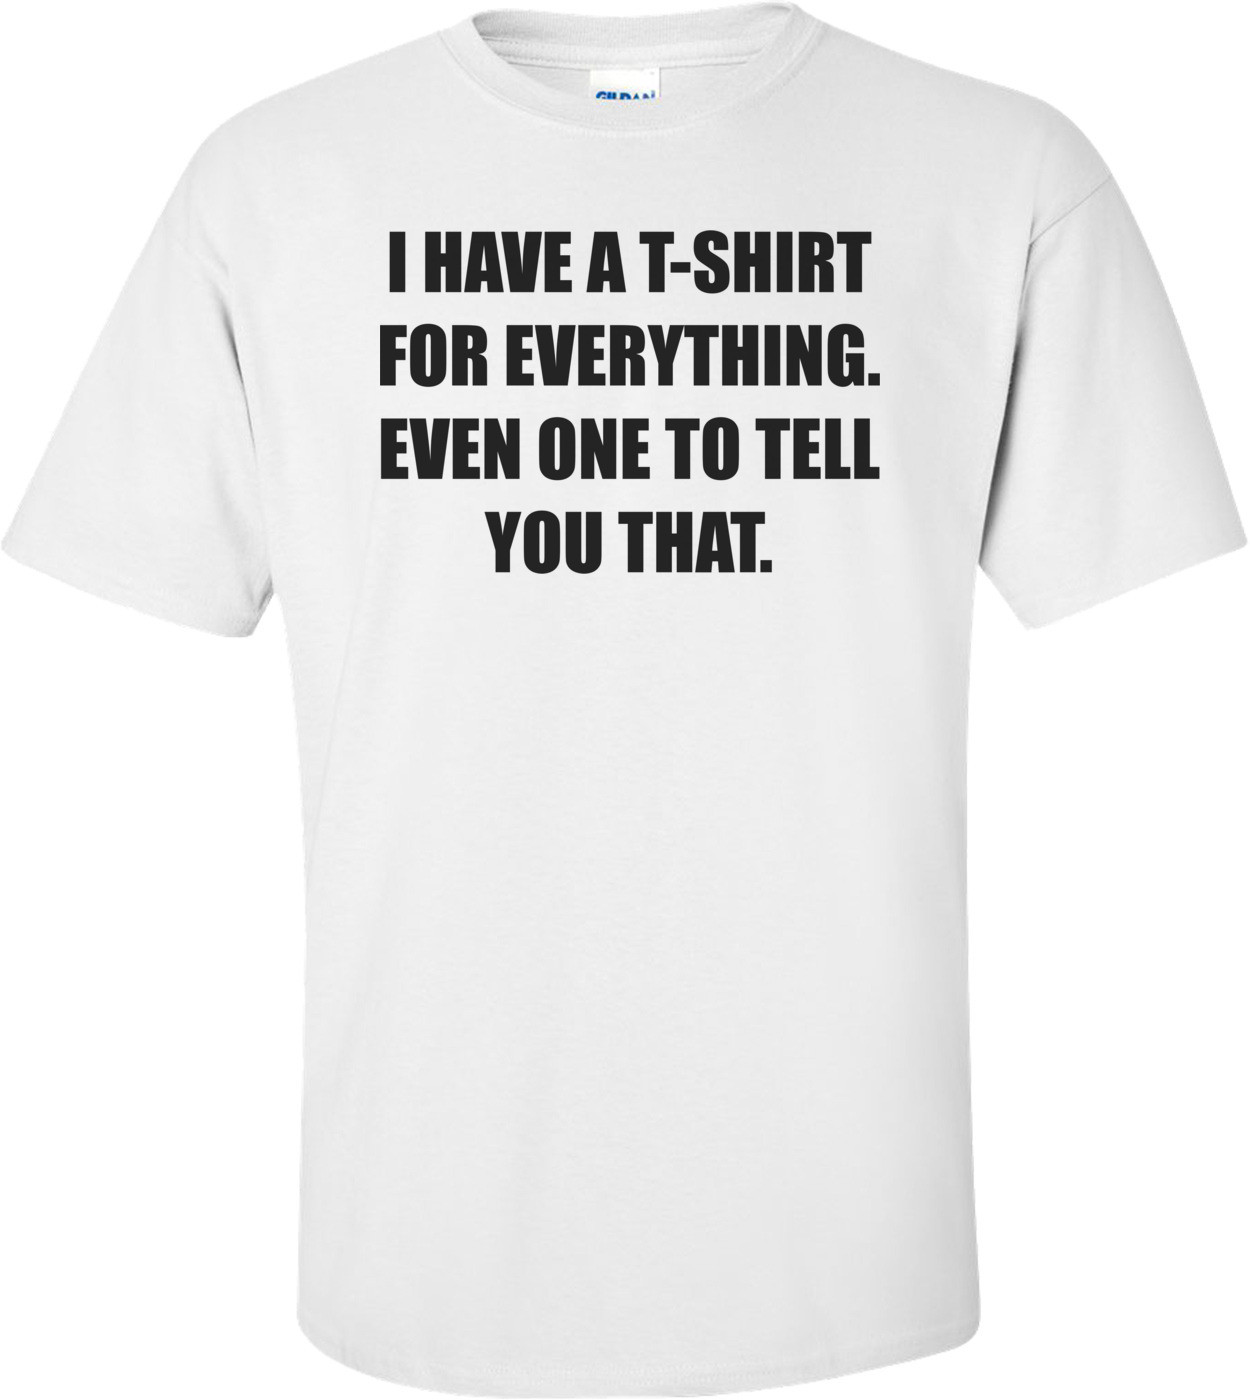 I HAVE A T-SHIRT FOR EVERYTHING. EVEN ONE TO TELL YOU THAT. Shirt